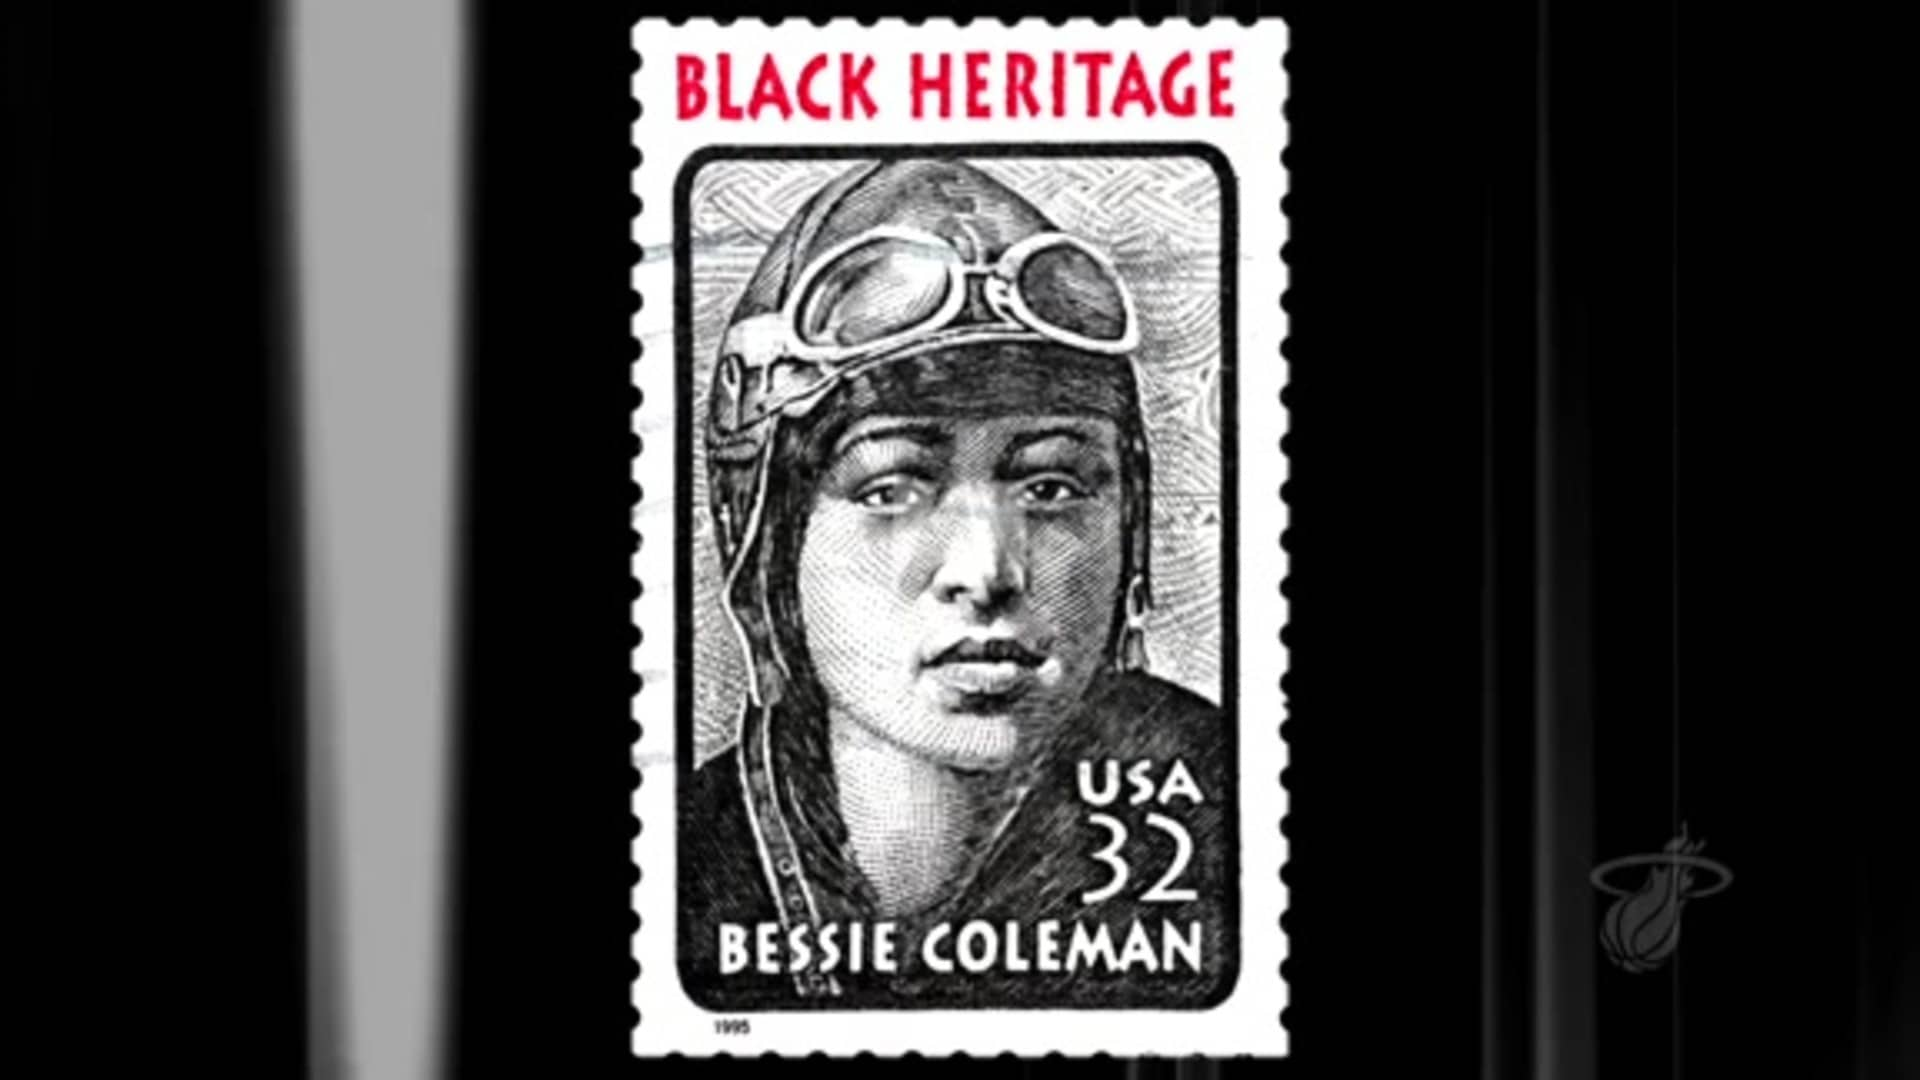 BHM: Shane Battier on Bessie Coleman